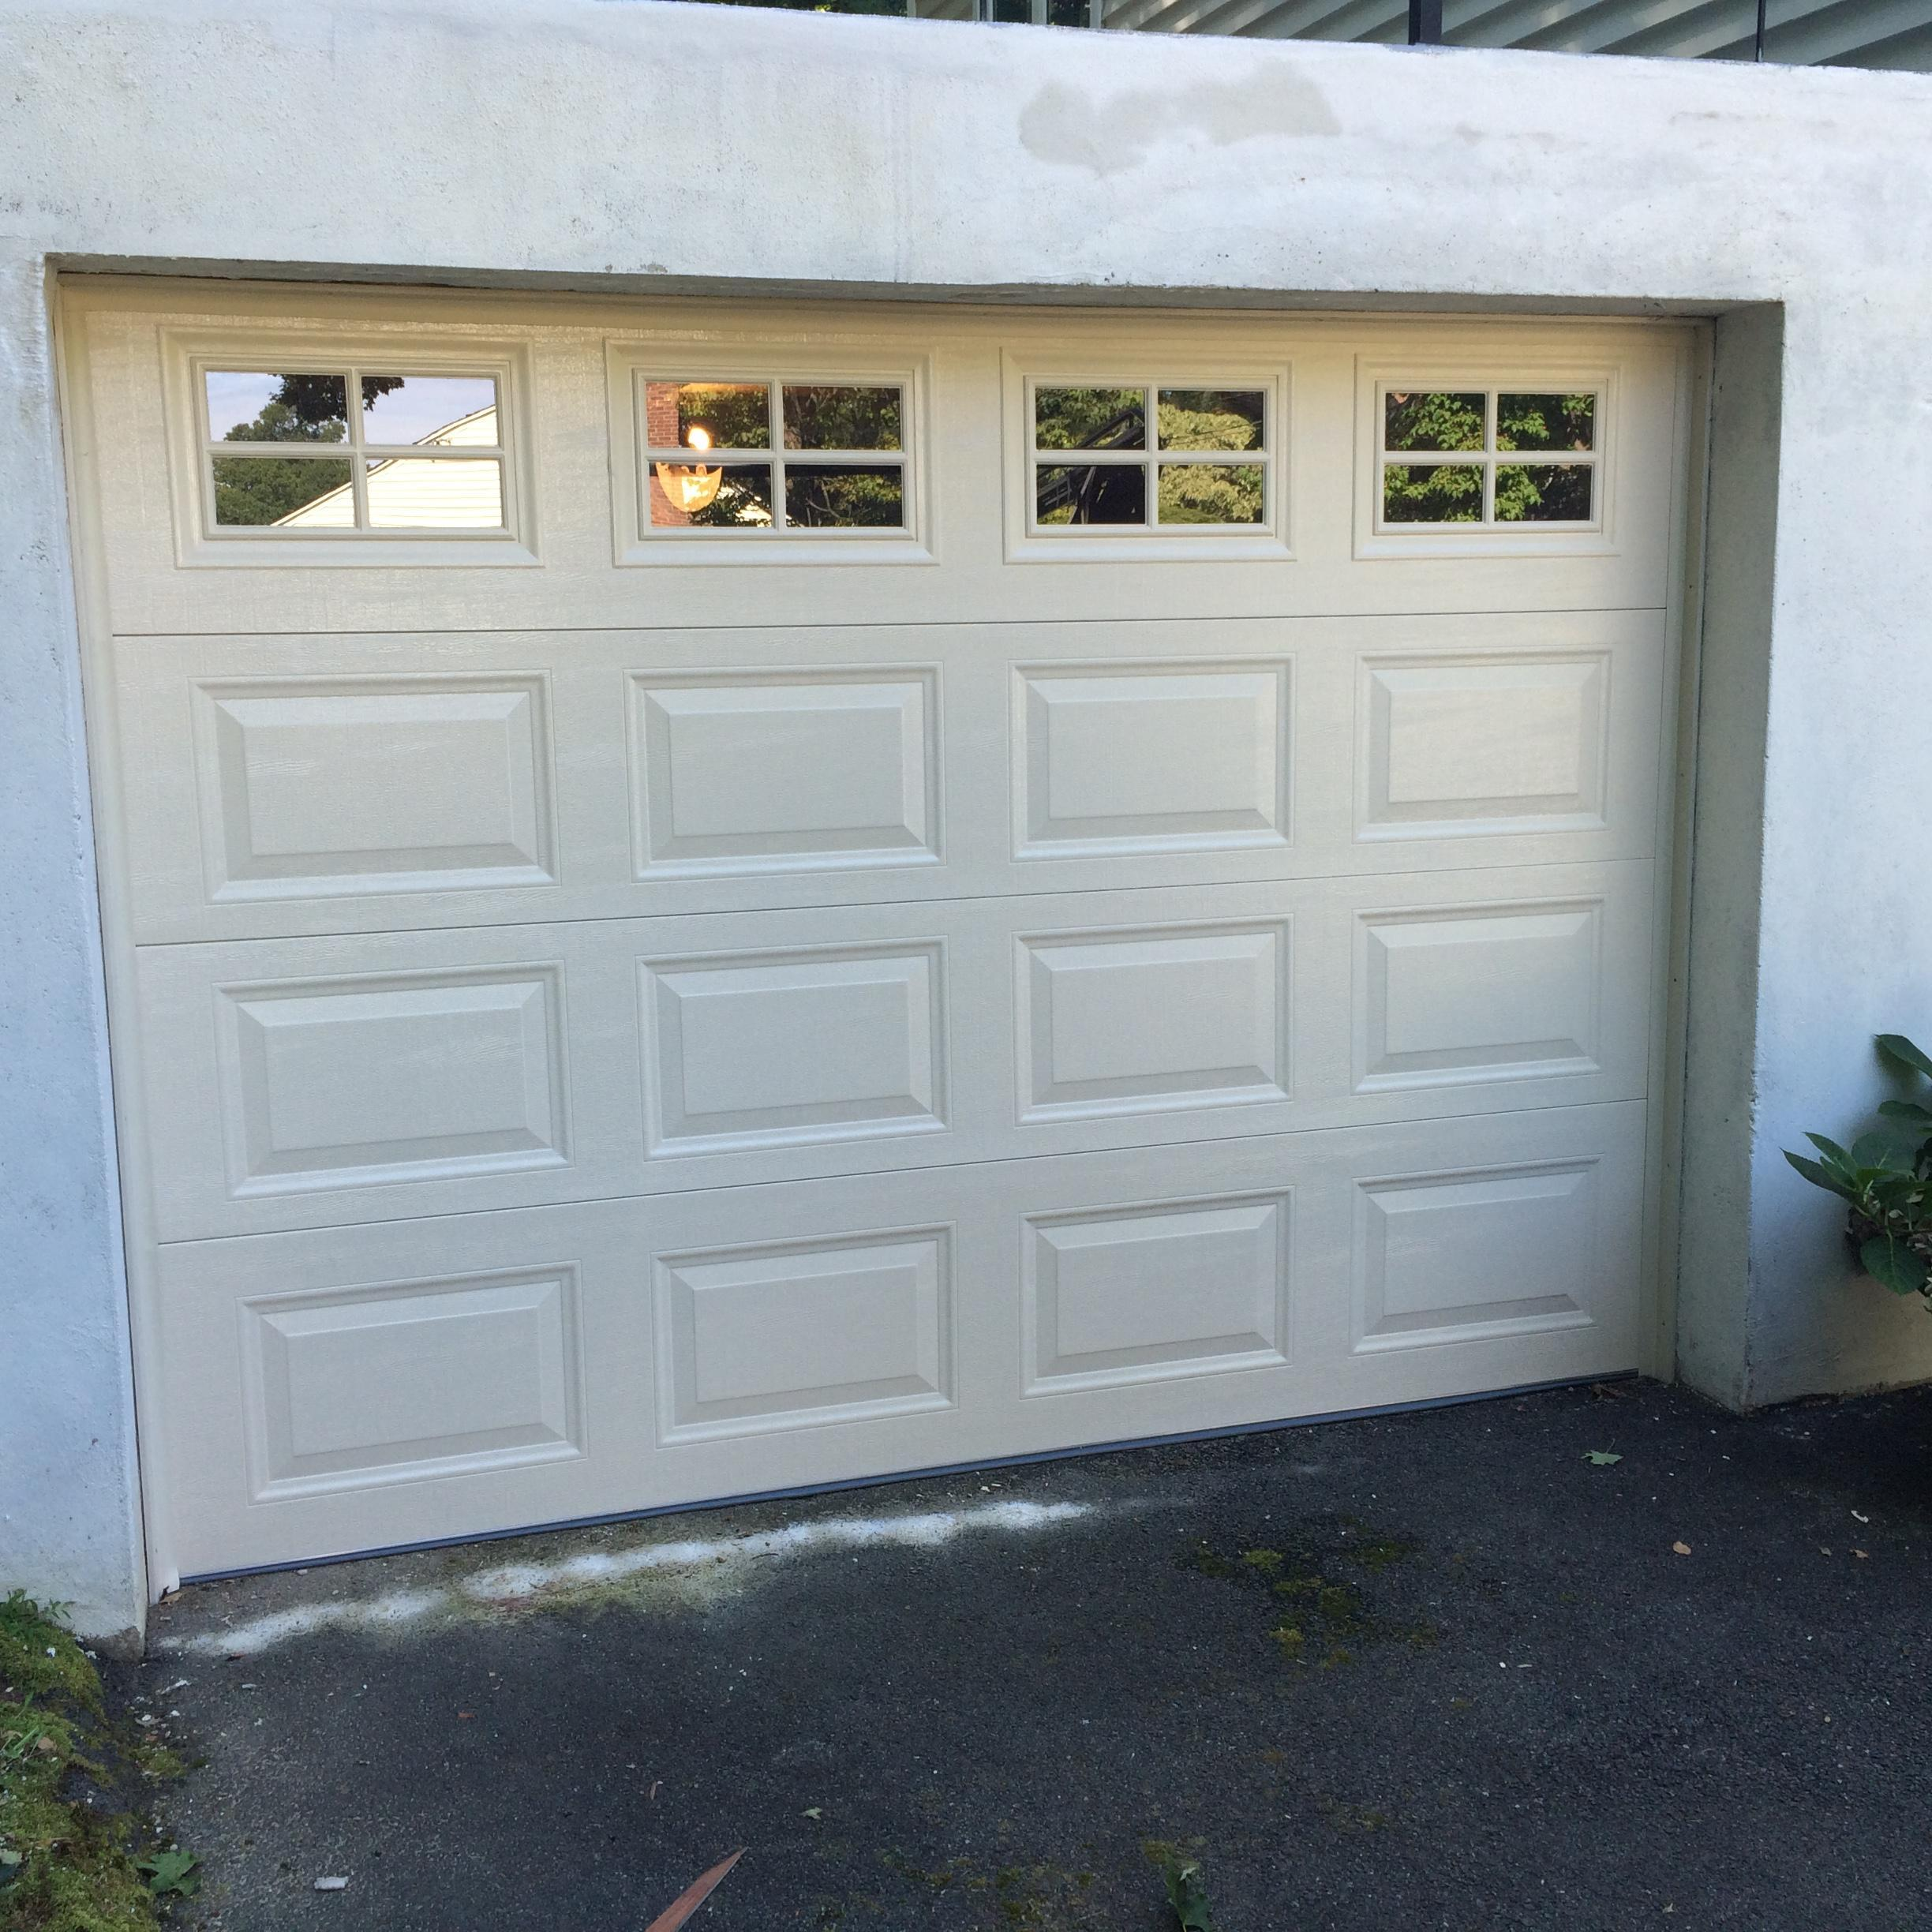 2448 #806D4B Overhead Doors Solutions In West Haven CT 06516 ChamberofCommerce  image Overhead Garage Doors Residential Reviews 37132448